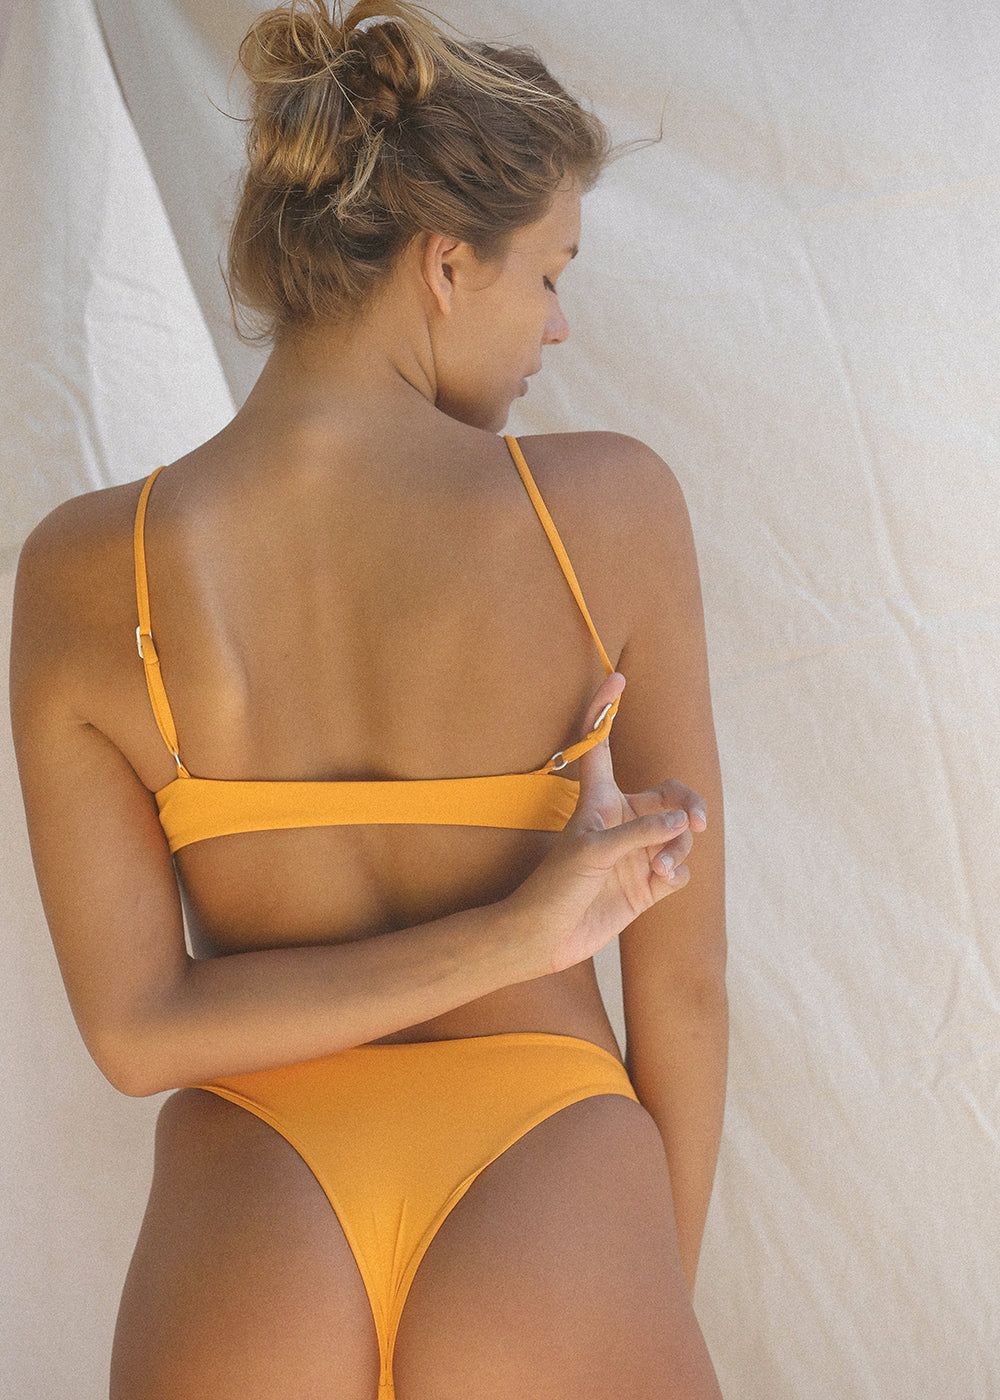 TOAST SWIM Knot Top |Radiant Yellow|